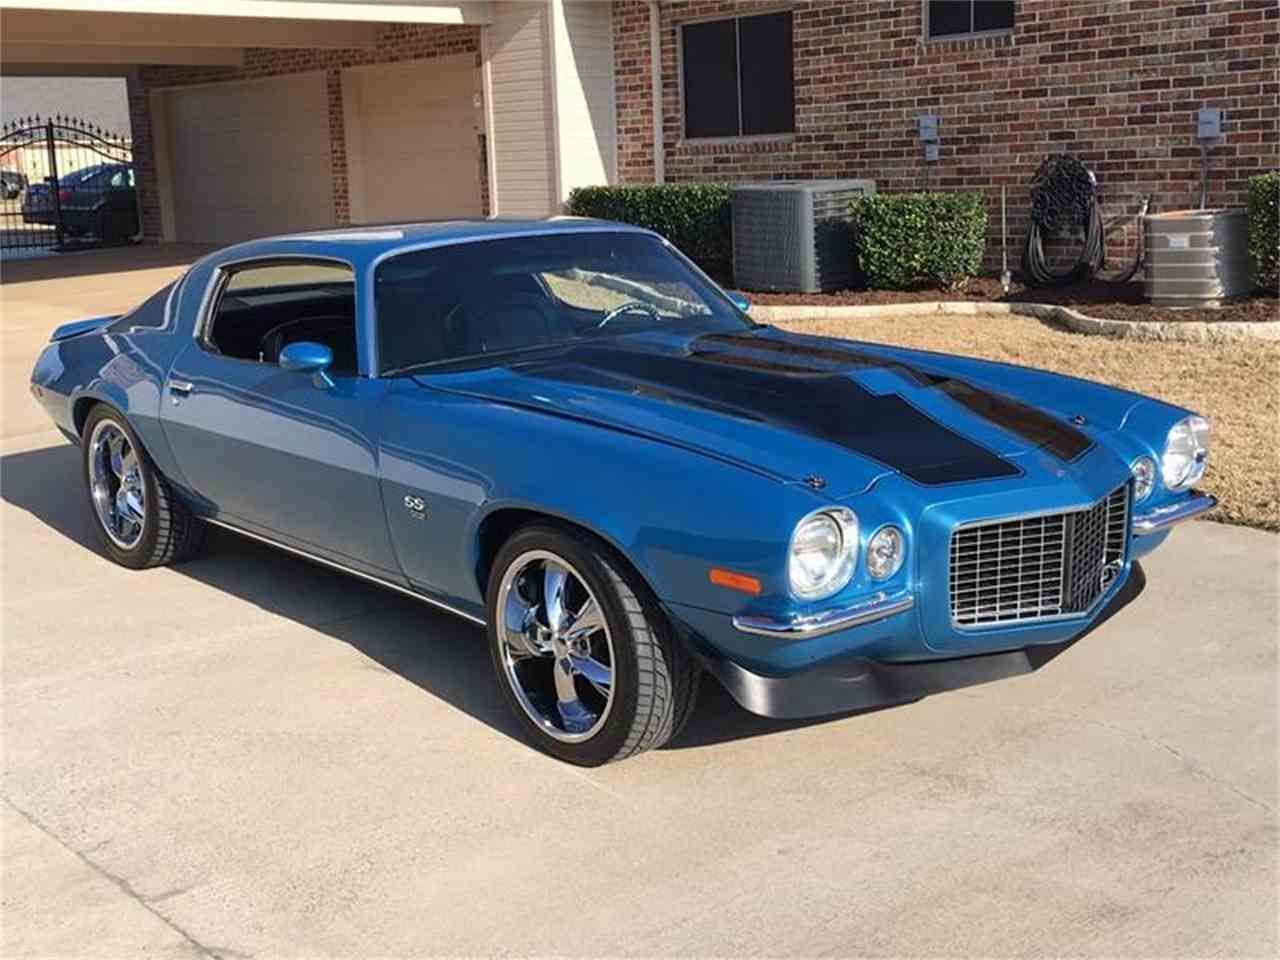 Large Picture of Classic 1970 Chevrolet Camaro SS located in ROWLETT Texas - KHIK